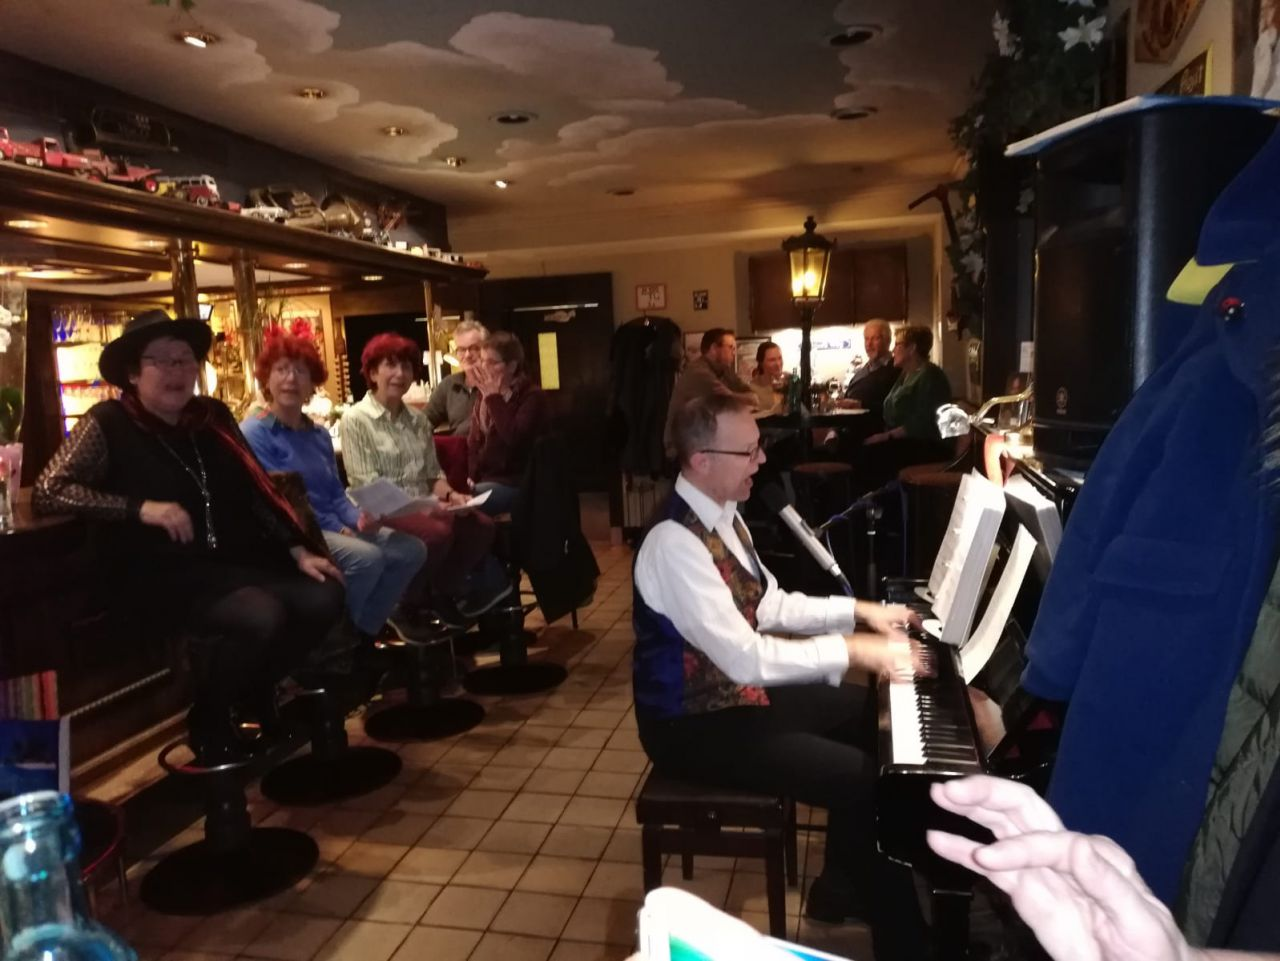 chorissimo im Restaurant Mutter Hoppe in Berlin singt berliner Lieder